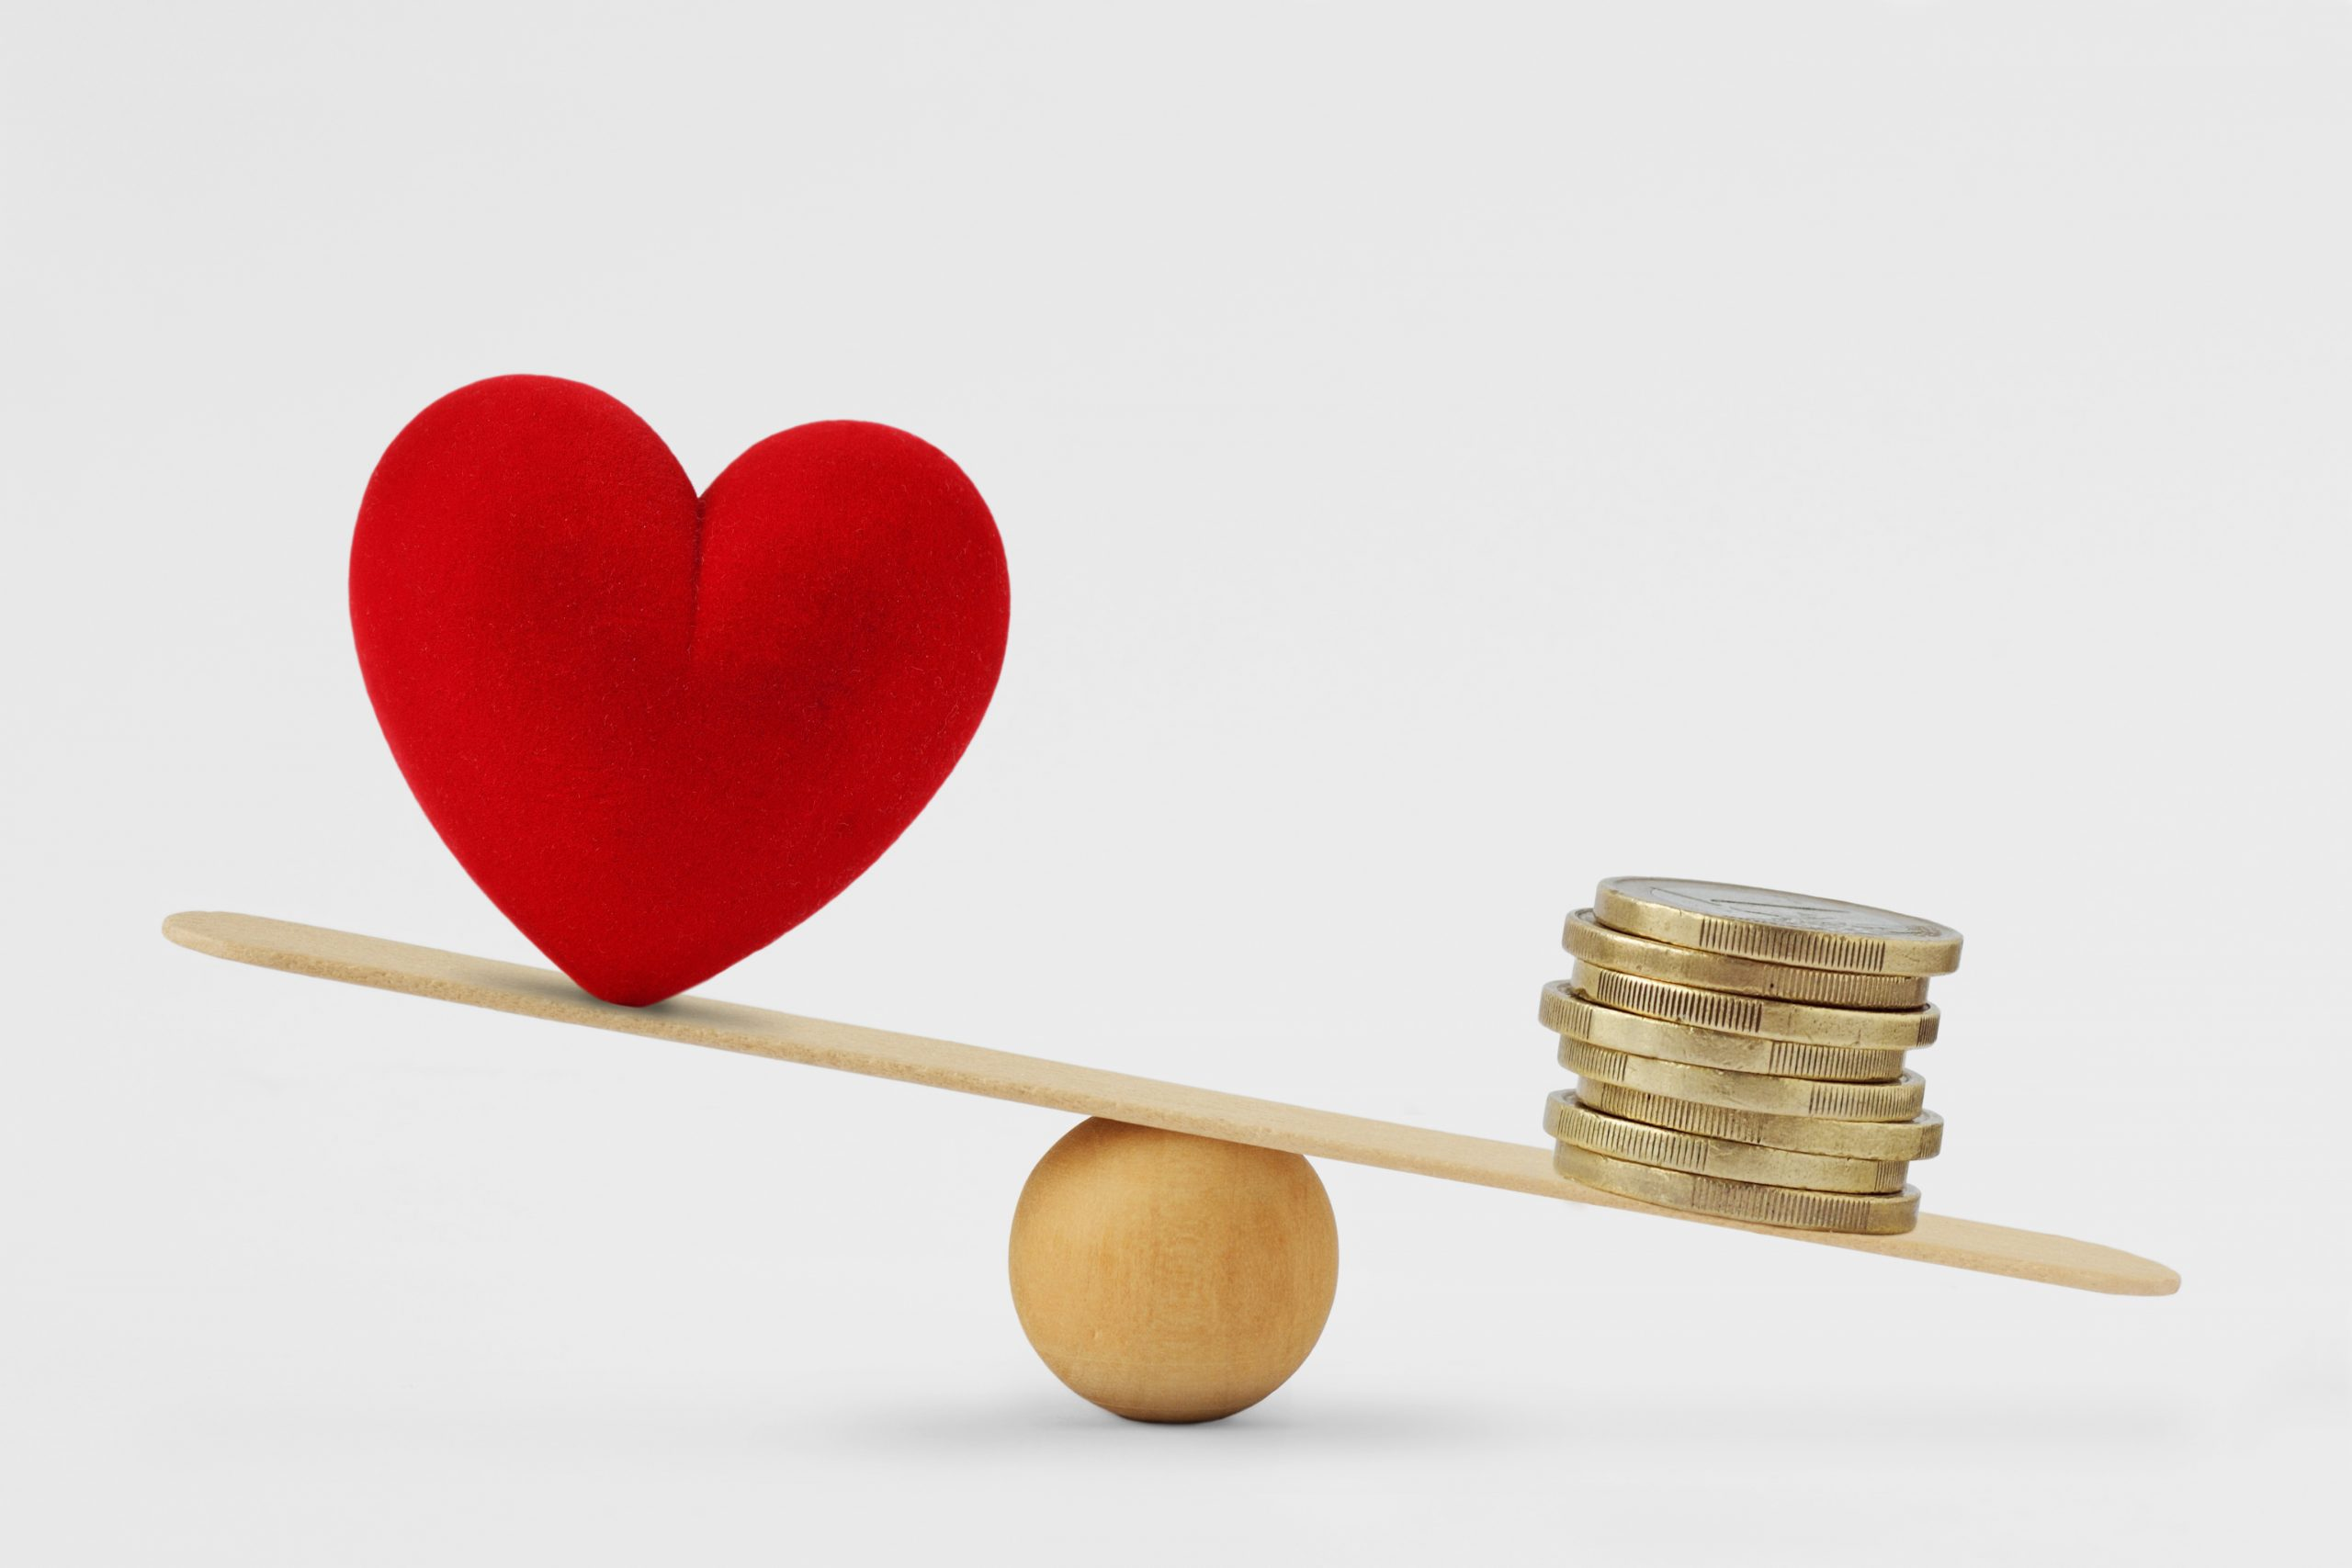 Heart and money on balance scale - Concept of money priority in life